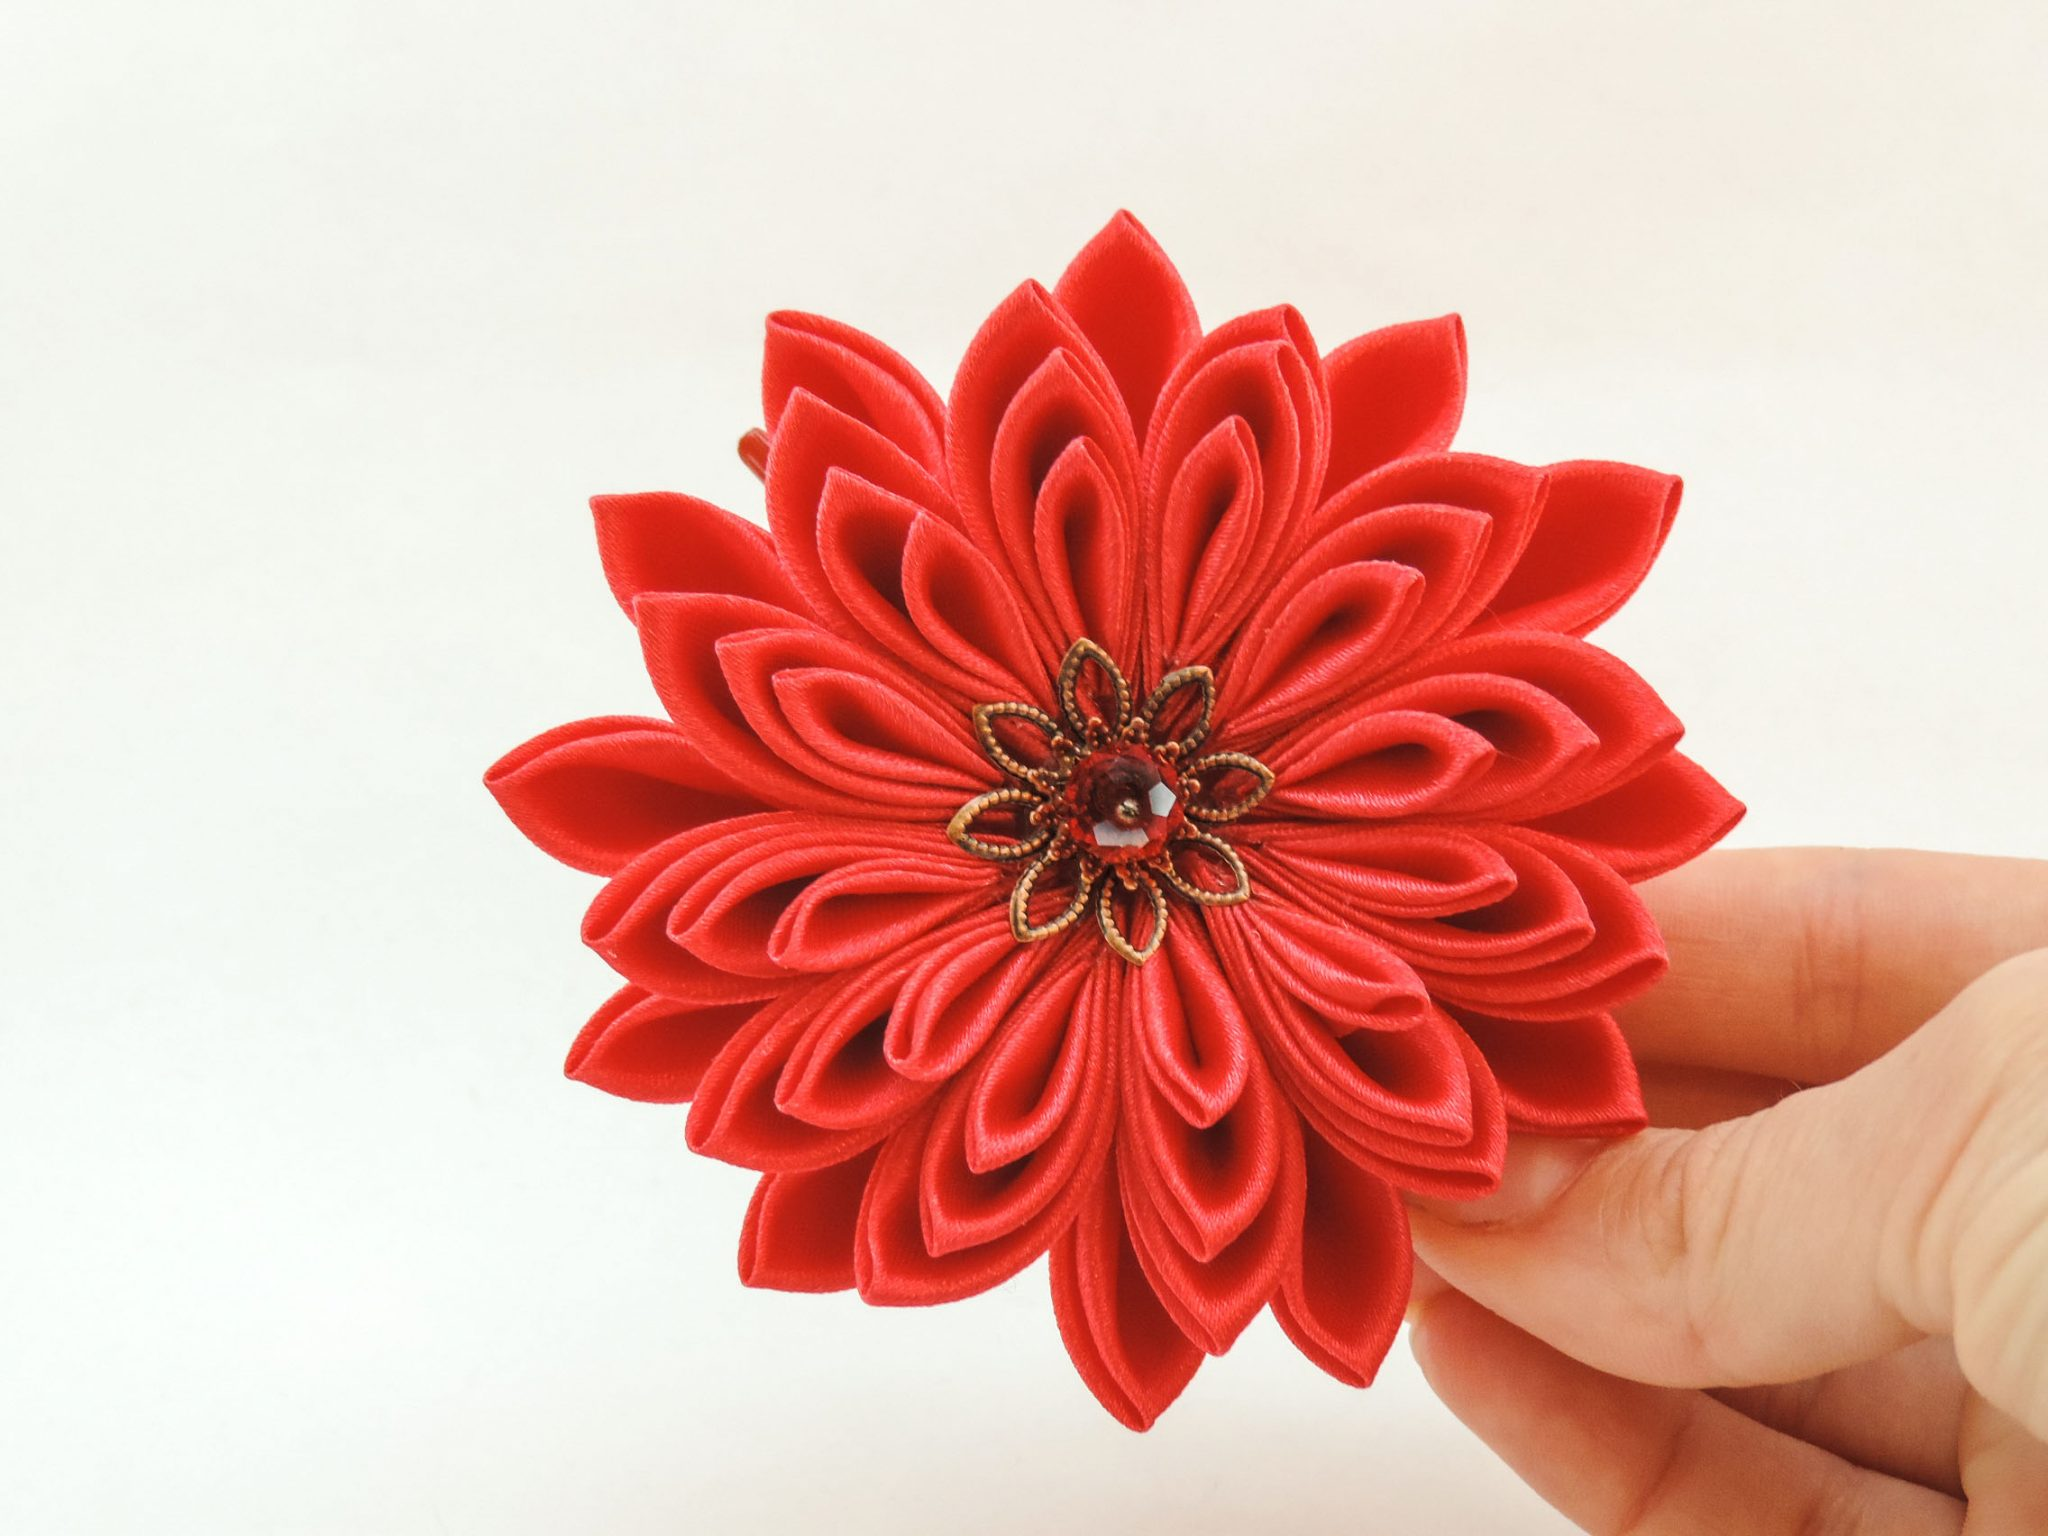 Red satin chrysanthemum - DIY tutorial